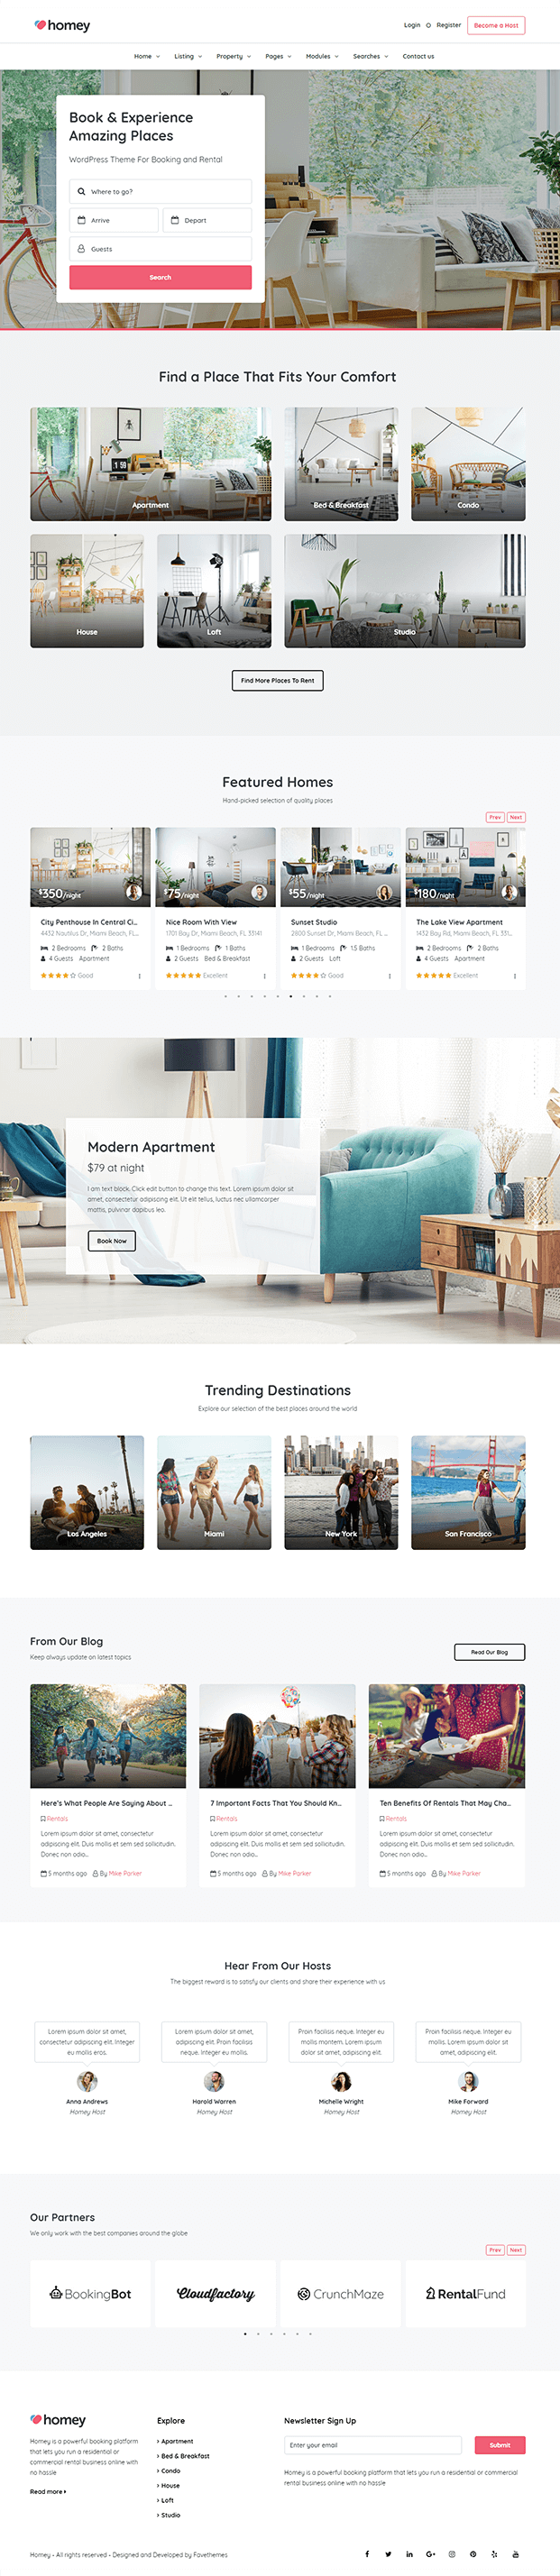 Home Page - Online Booking WordPress Theme